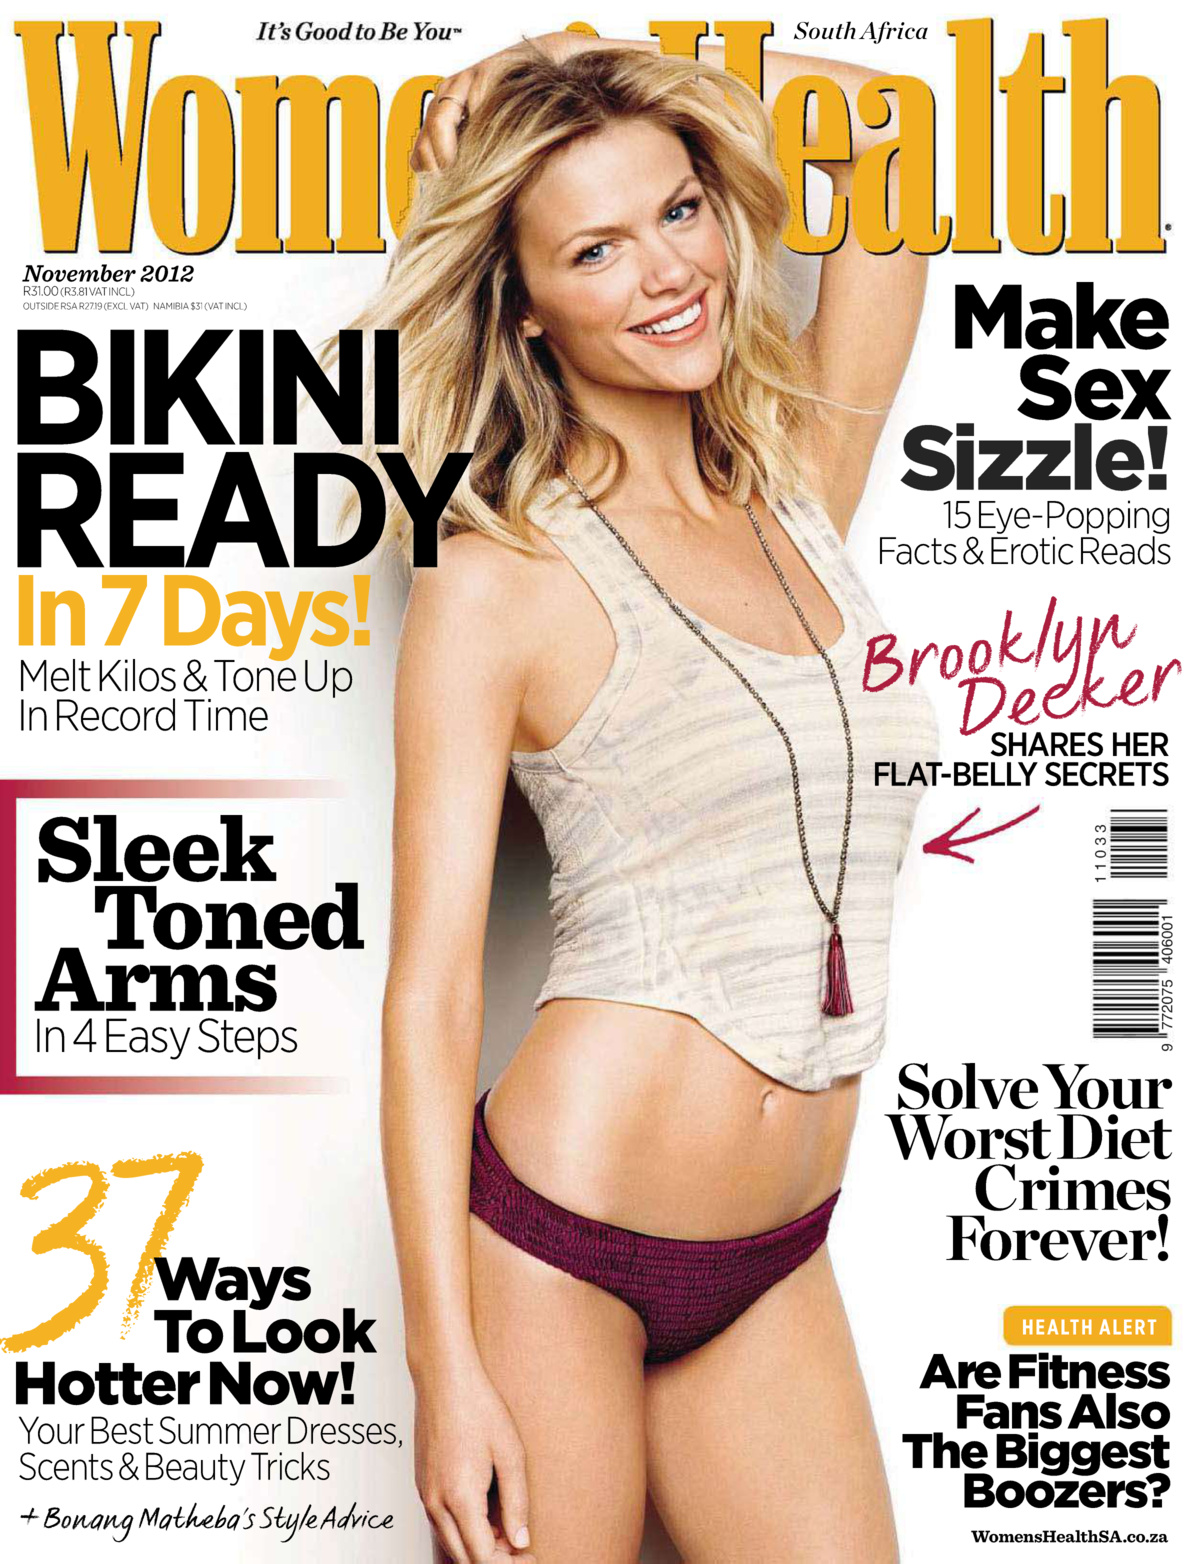 http://1.bp.blogspot.com/-XNqbJMXrVYc/UIW4uxvuzKI/AAAAAAAAVmQ/OmSp-cTxN3A/s1600/Brooklyn+Decker+-+Women%27s+Health+South+Africa+November+2012+issue+-01.jpg